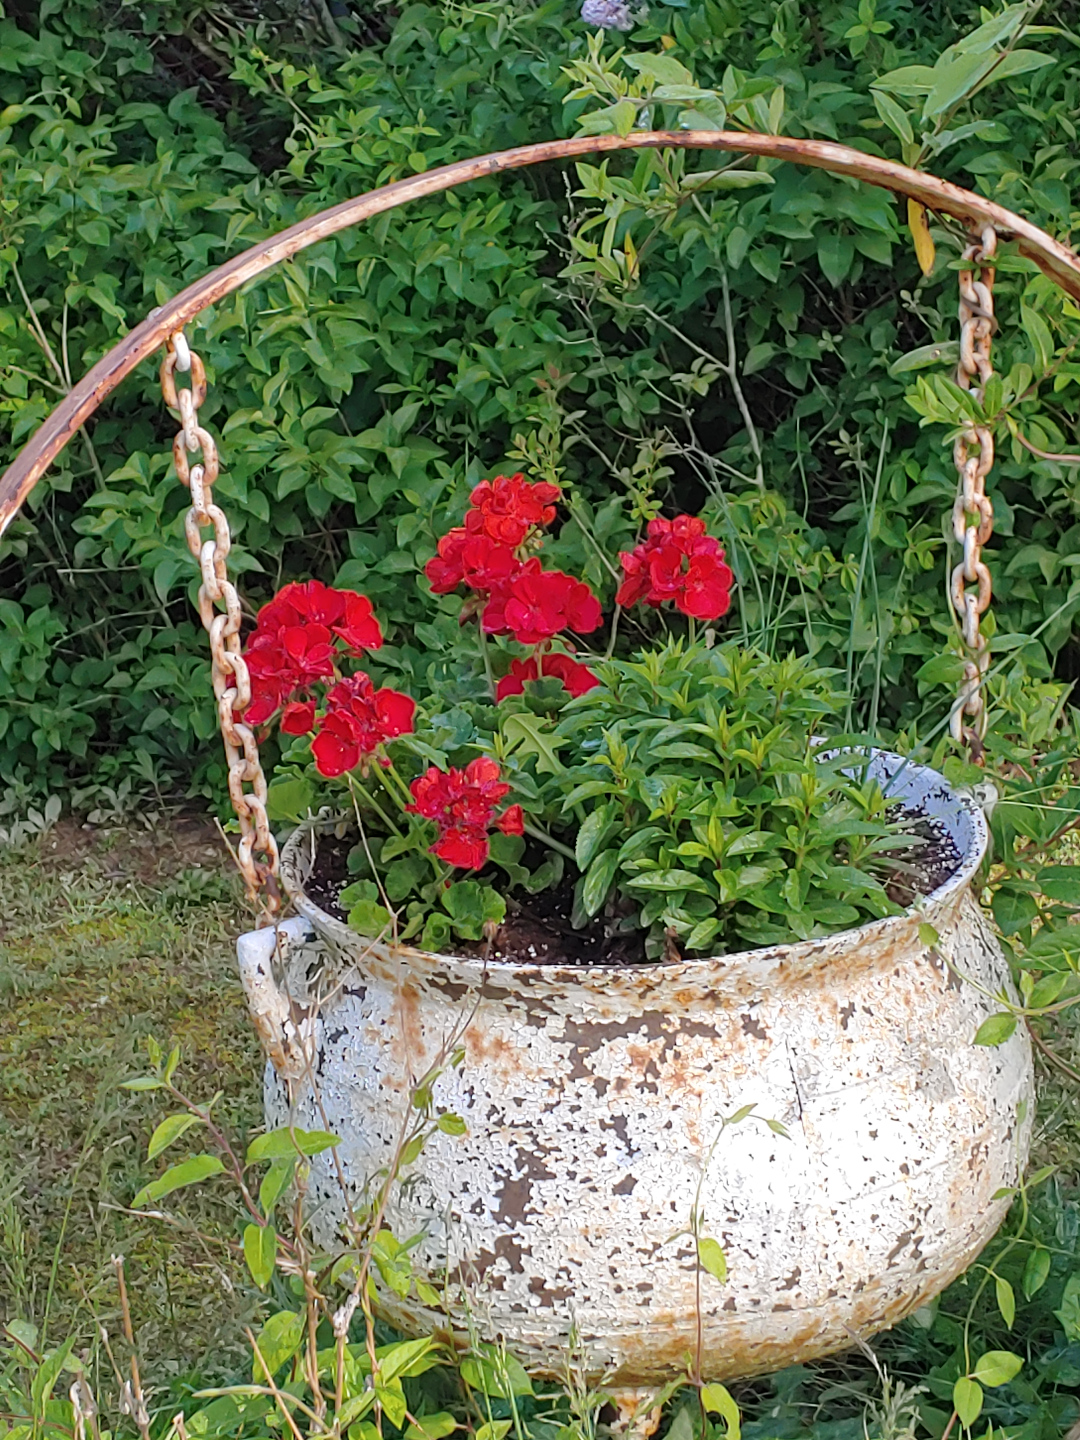 A cauldron with white flaking paint hanging from chains and planted with red geraniums